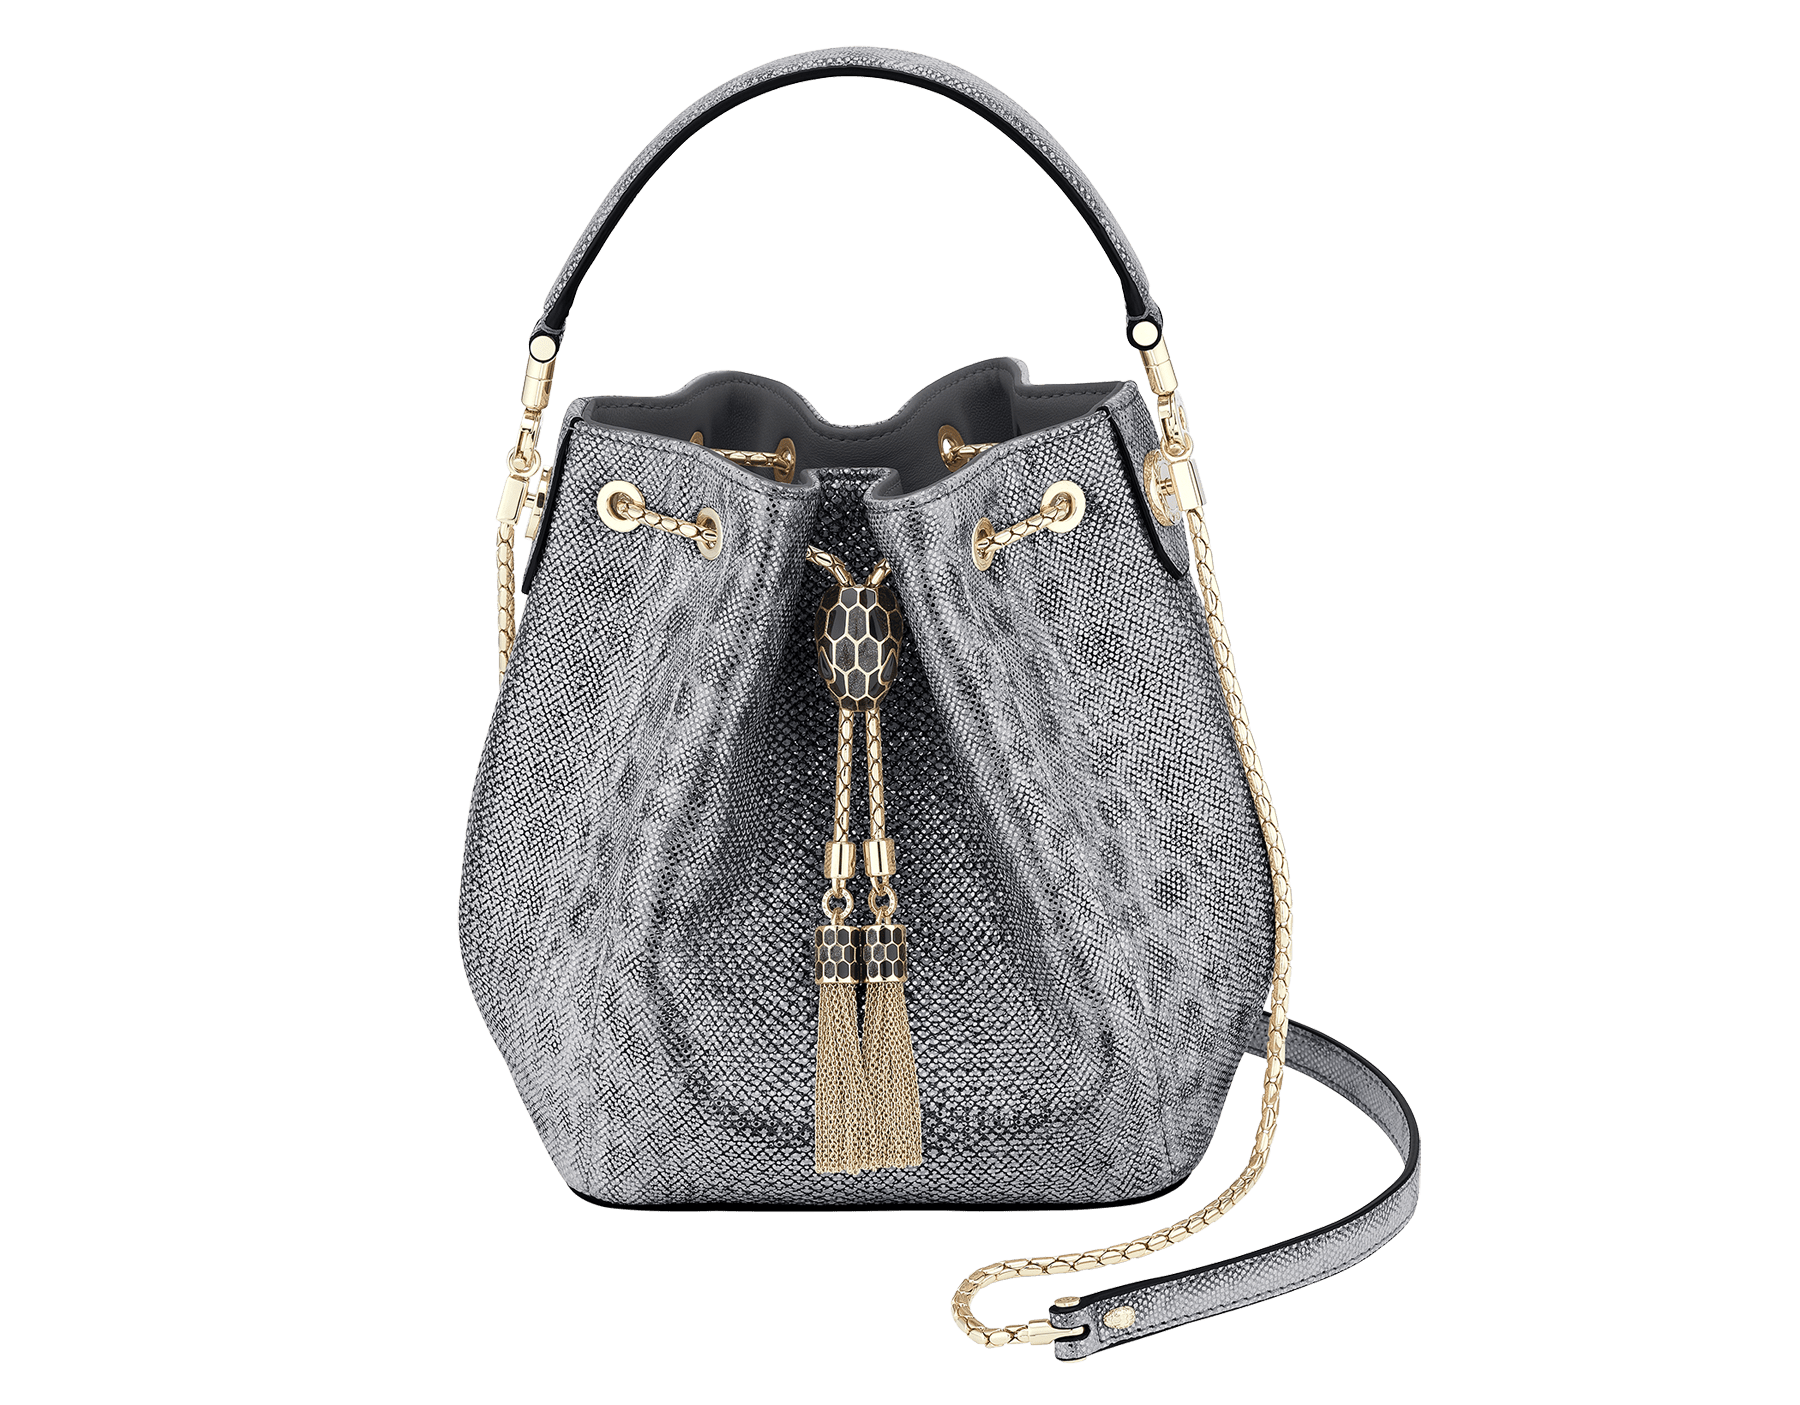 """""""Serpenti Forever"""" bucket in mint metallic karung skin and black nappa internal lining. Hardware in light gold plated brass and snakehead closure in black and white agate enamel, with eyes in black onyx. 934-MK image 1"""